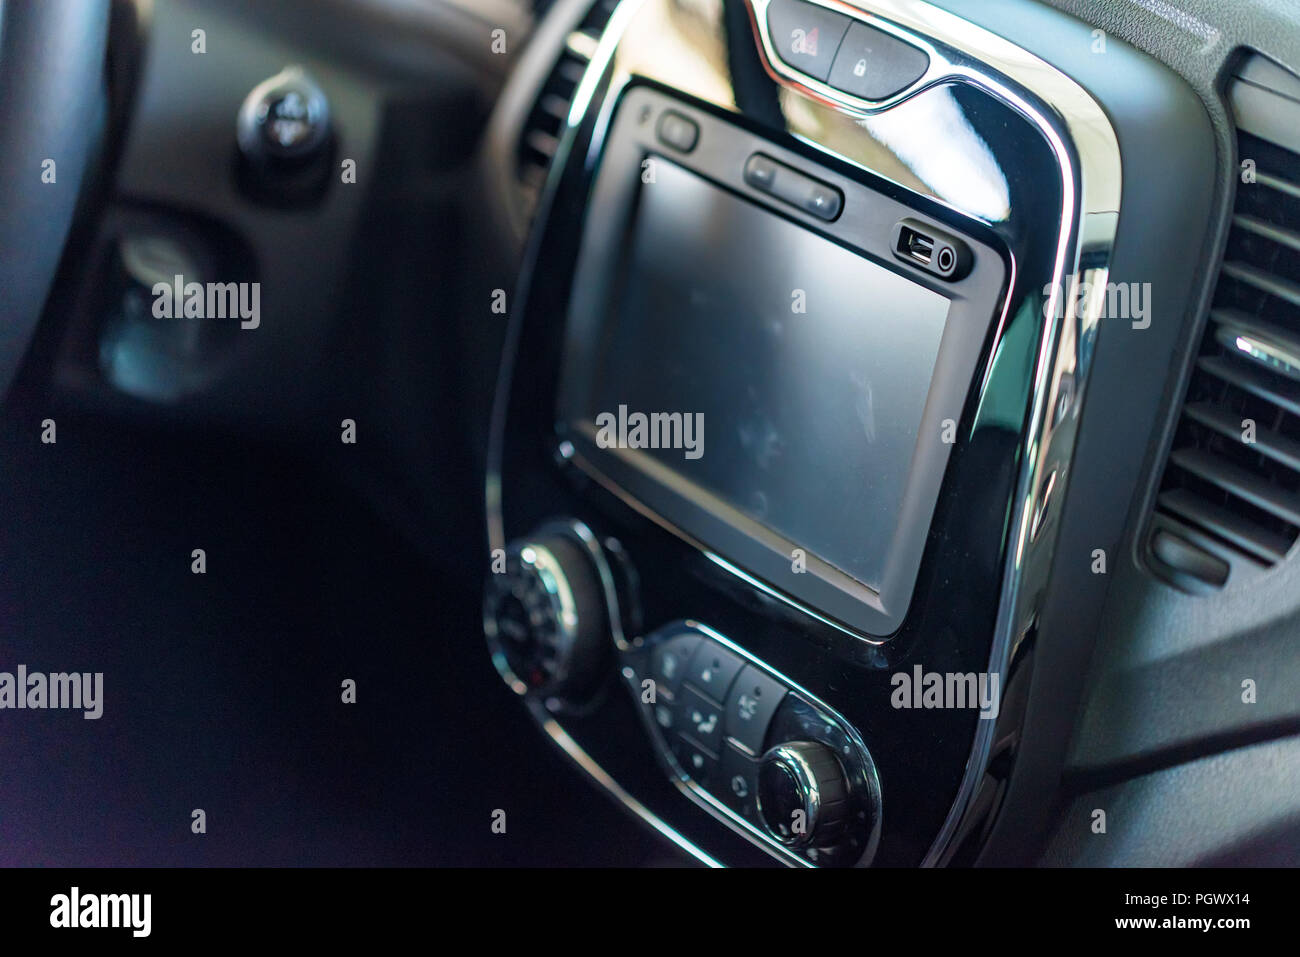 Multimedia system of modern car. Interior concept - Stock Image